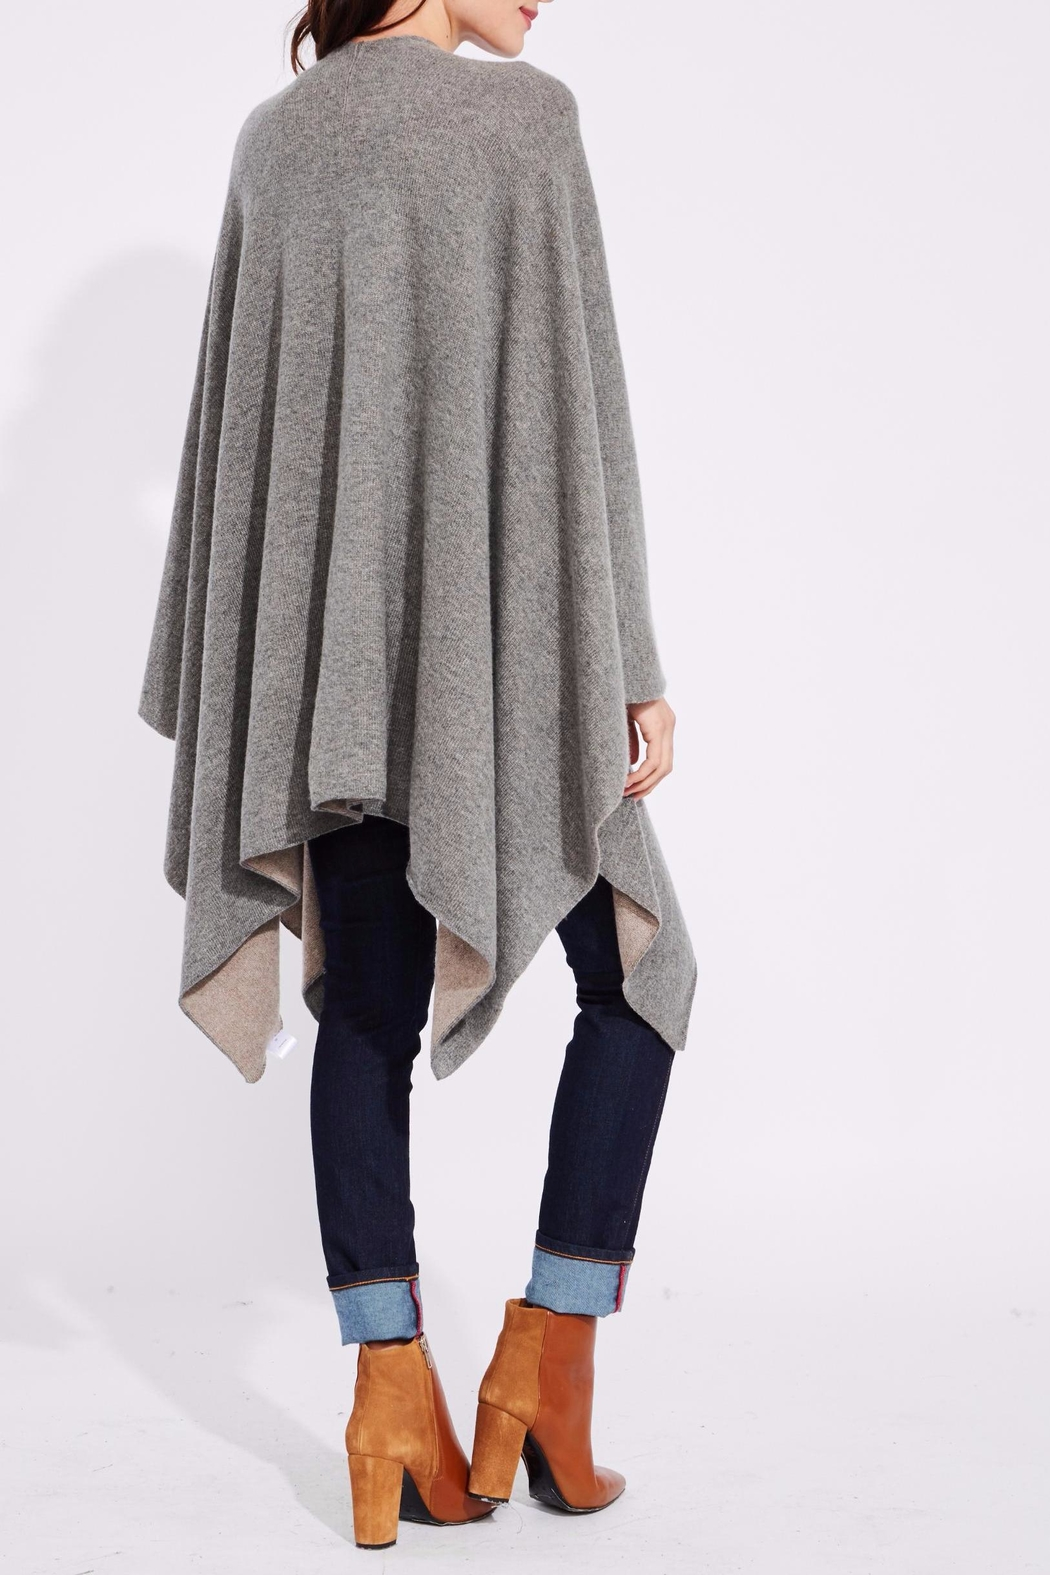 Roberta Roller Rabbit Doris Sweater Cape - Front Full Image